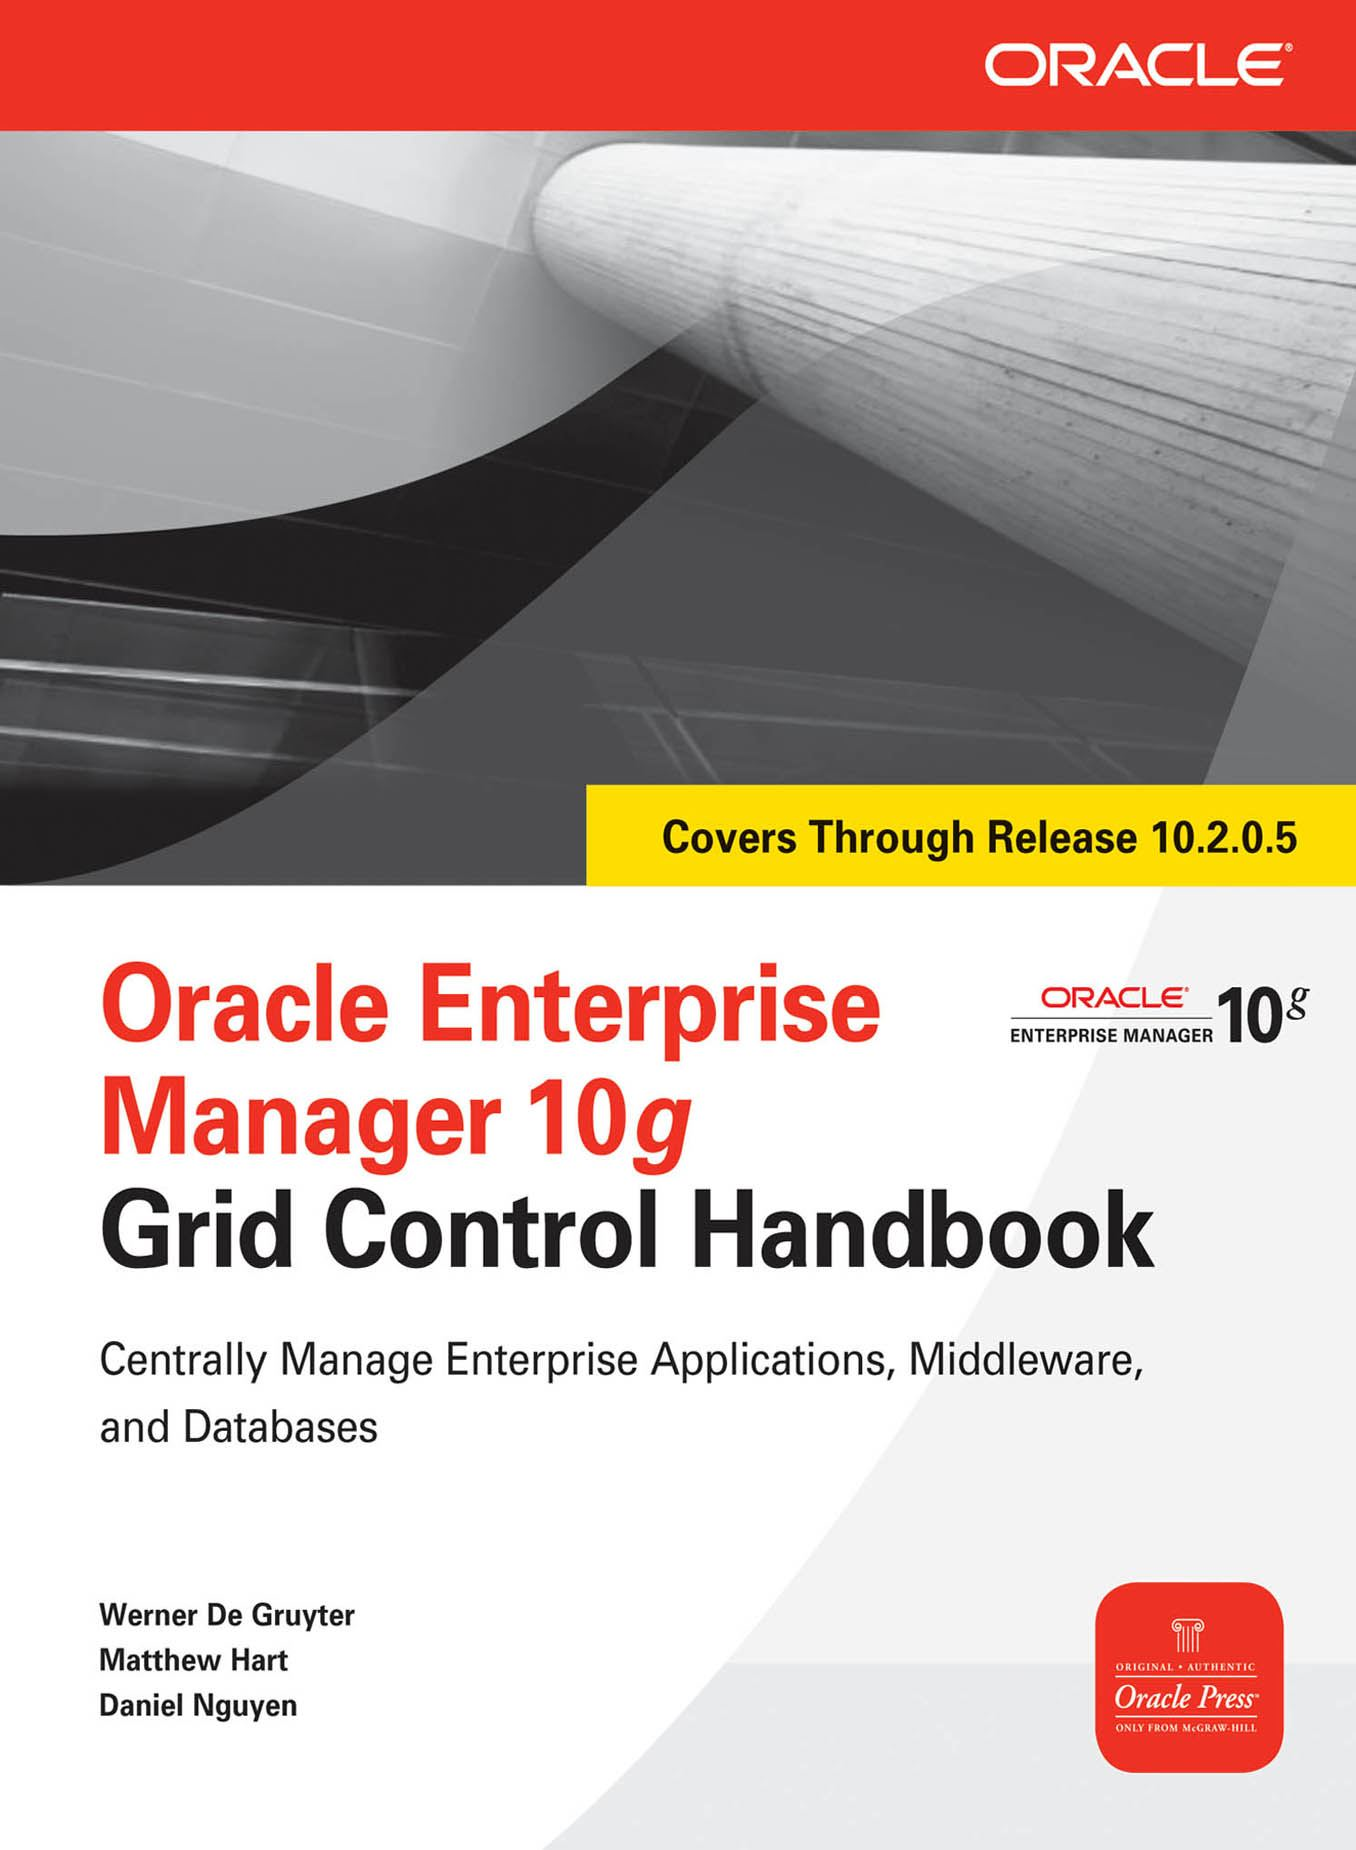 Oracle Enterprise Manager 10g Grid Control Handbook